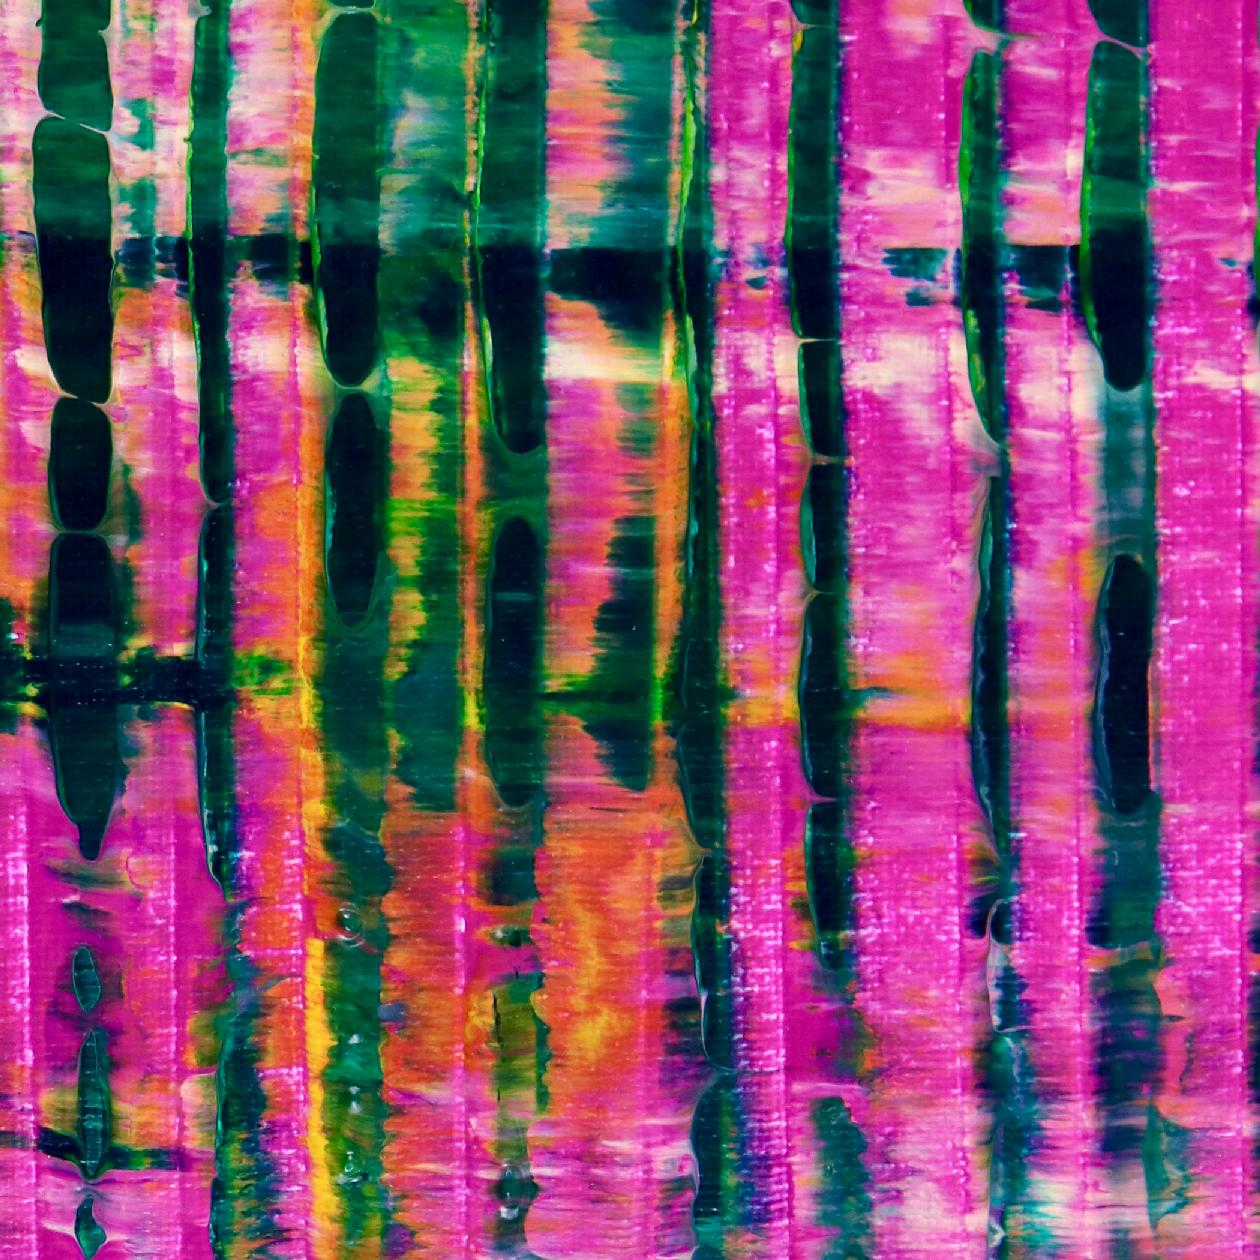 Detail - Pink Refractions (Green Textures) 2 (2020) by Nestor Toro